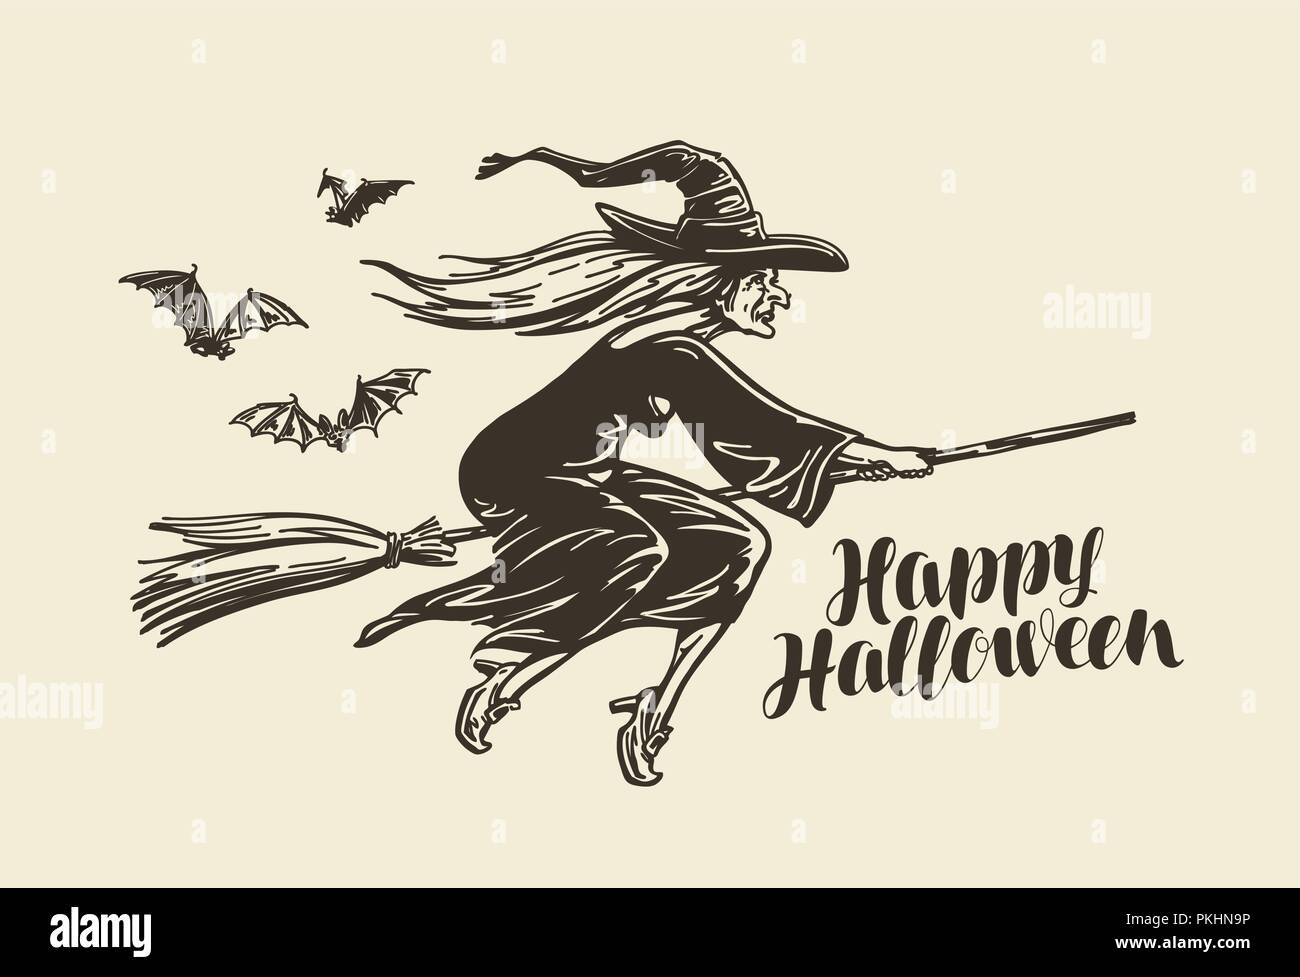 Halloween, greeting card. Old witch flies on broomstick. Vintage sketch vector illustration - Stock Image